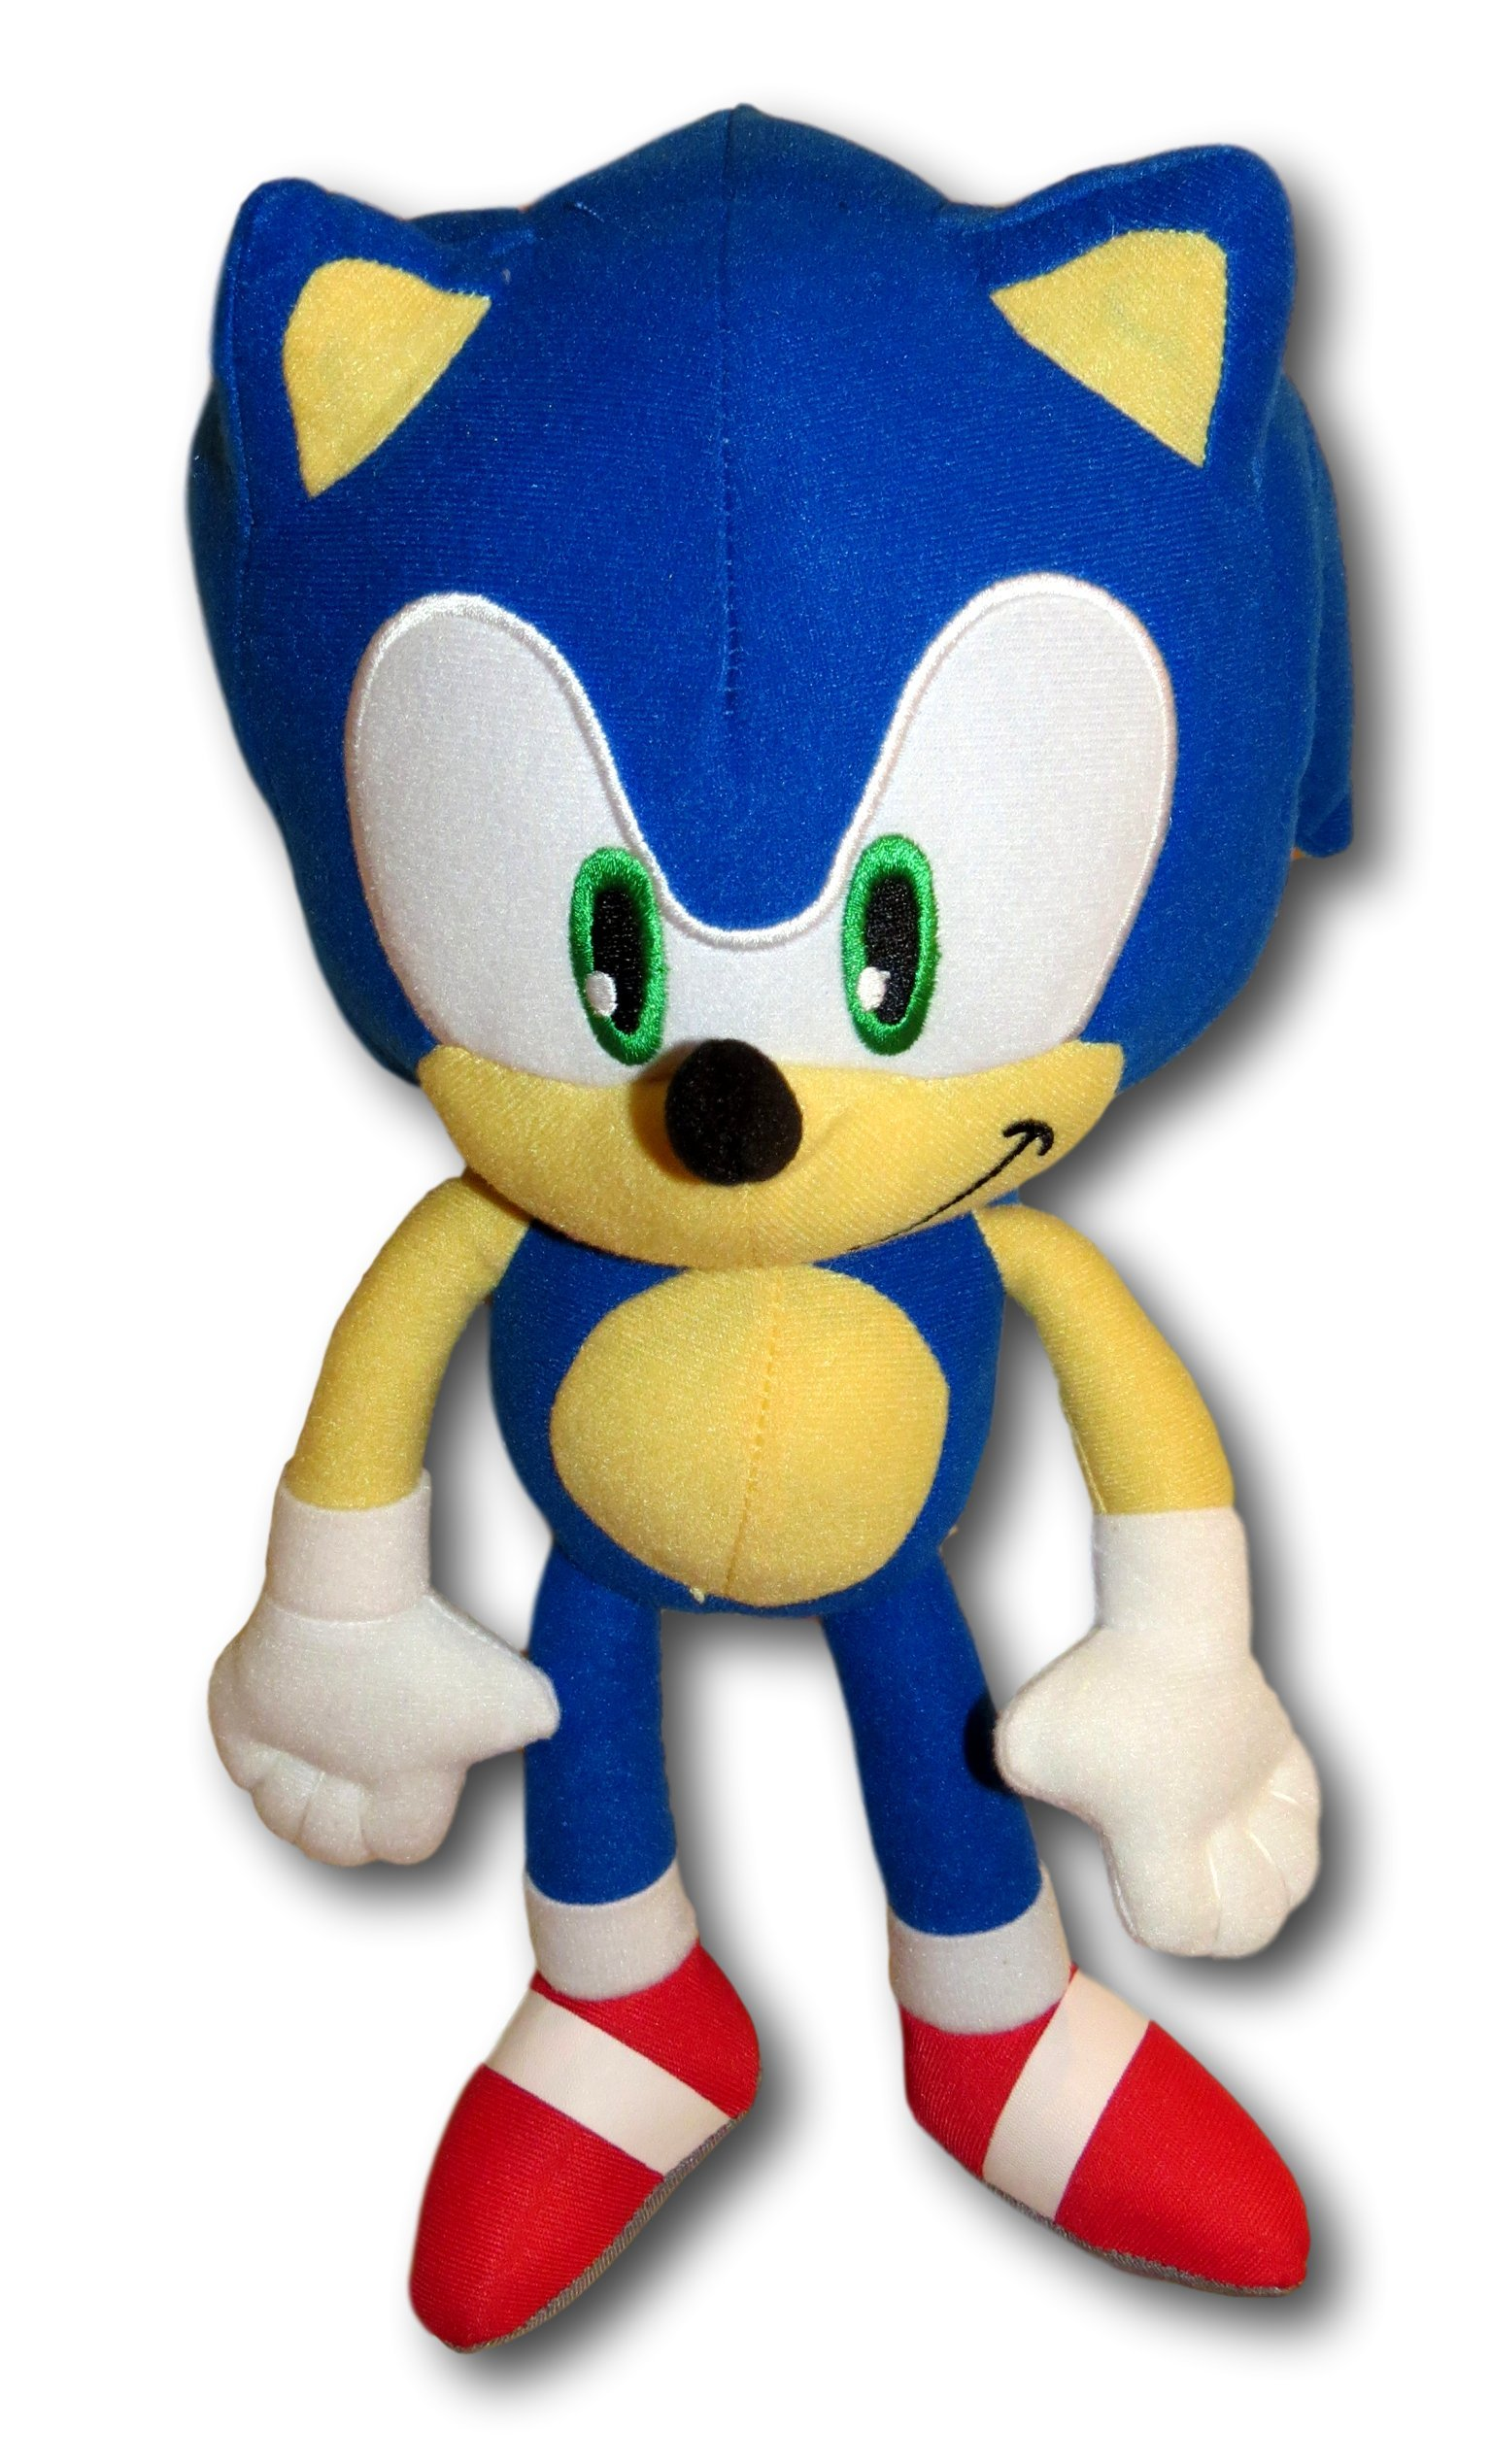 Buy Super Sonic The Hedgehog 11 5 Plush Toy Modern In Cheap Price On Alibaba Com